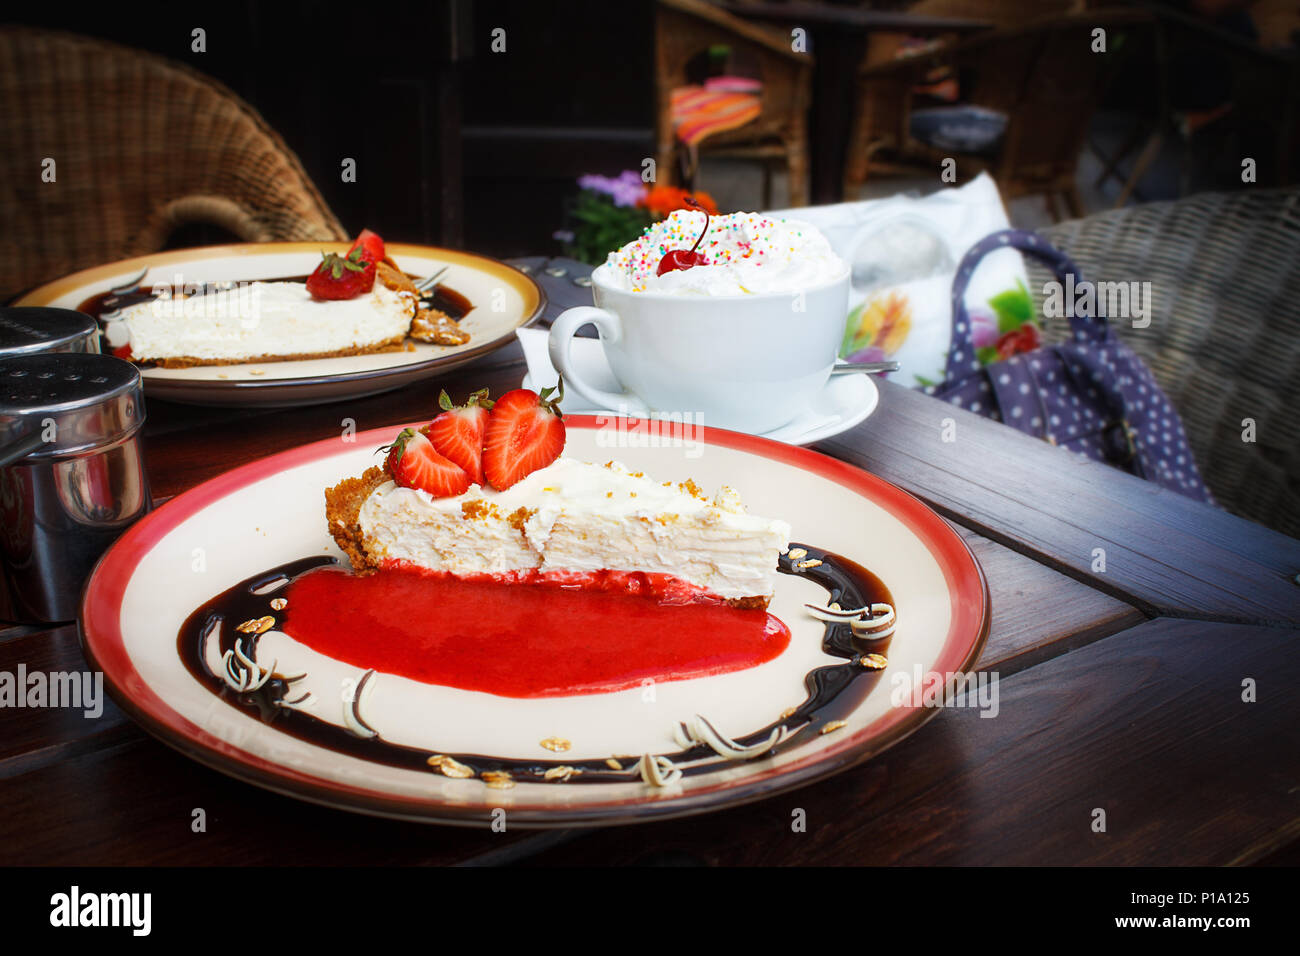 Cheesecake with fresh strawberries on plate and a cup of Viennese coffee with whipped cream on a brown wooden table in a summer outdoor cafe. Relaxing cozy old town atmosphere. offee break, dessert. - Stock Image